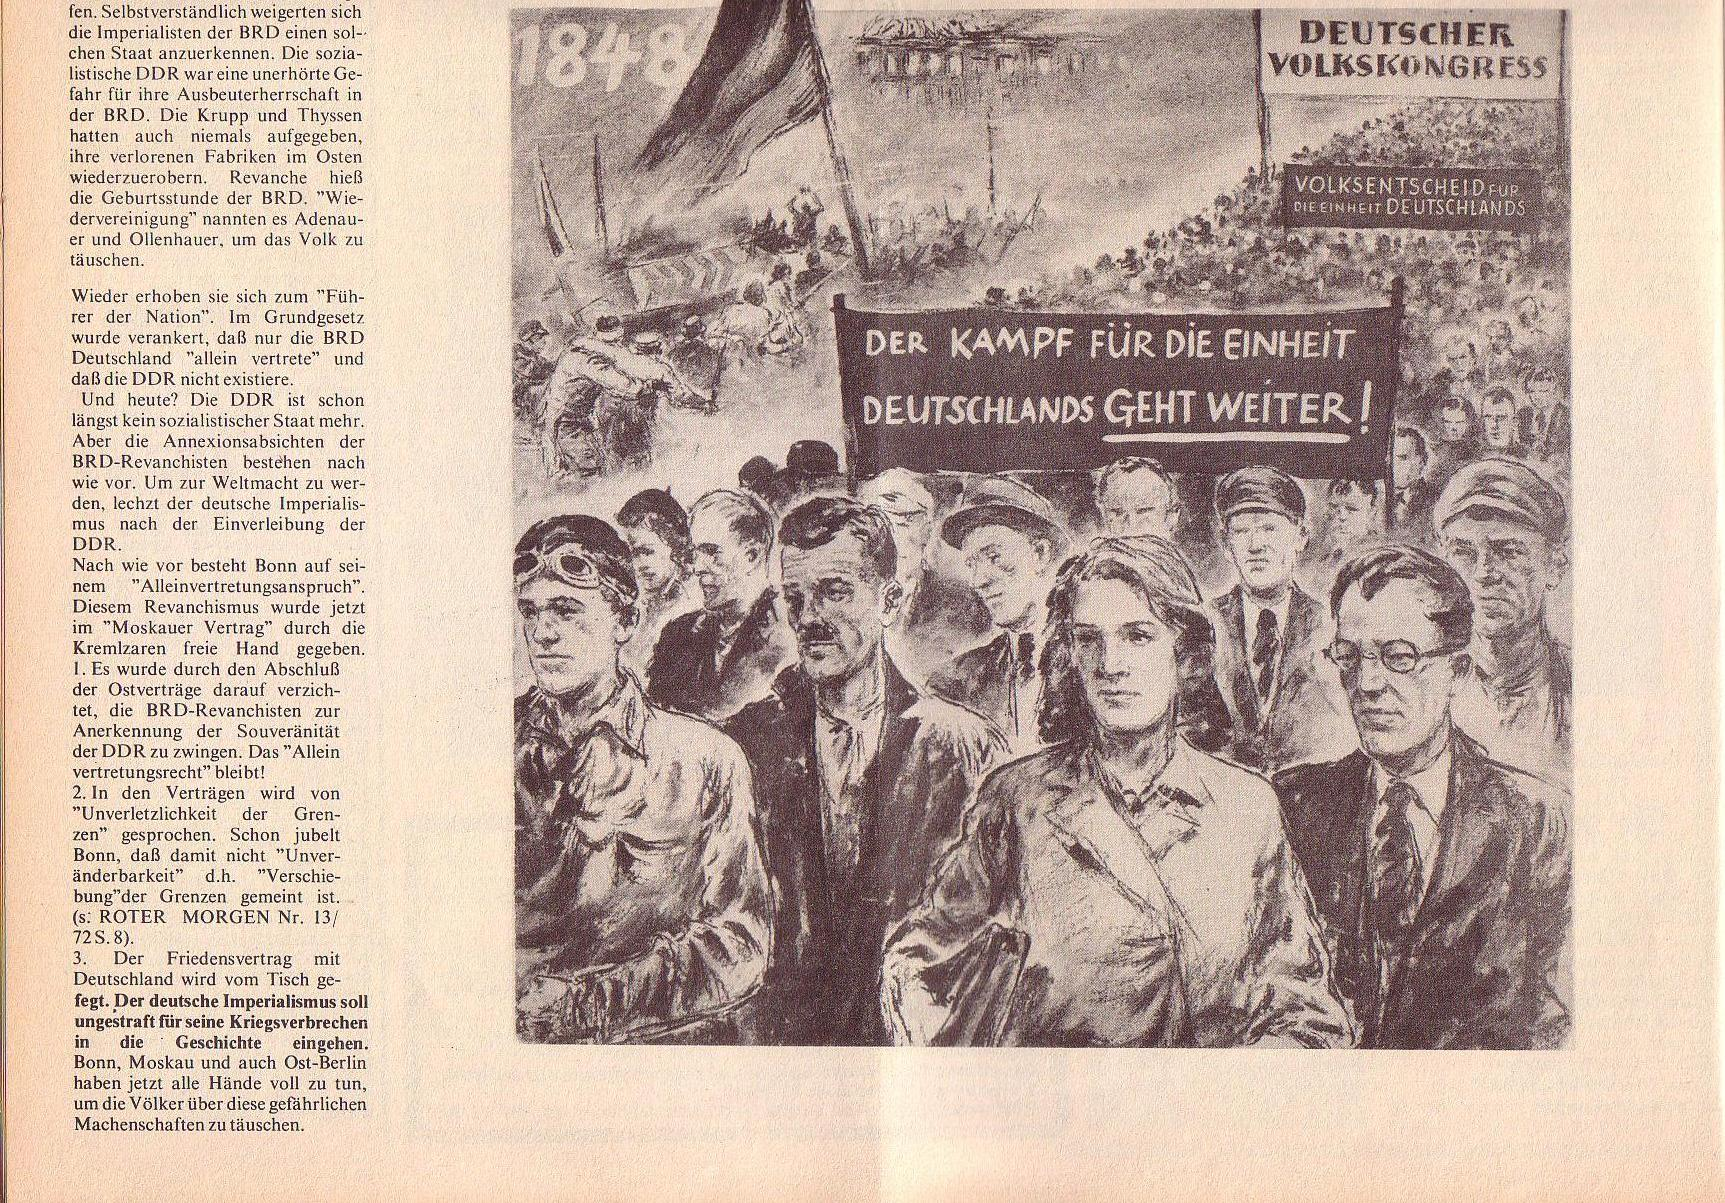 Roter Morgen, 6. Jg., 14. August 1972, Nr. 16, Seite 8b